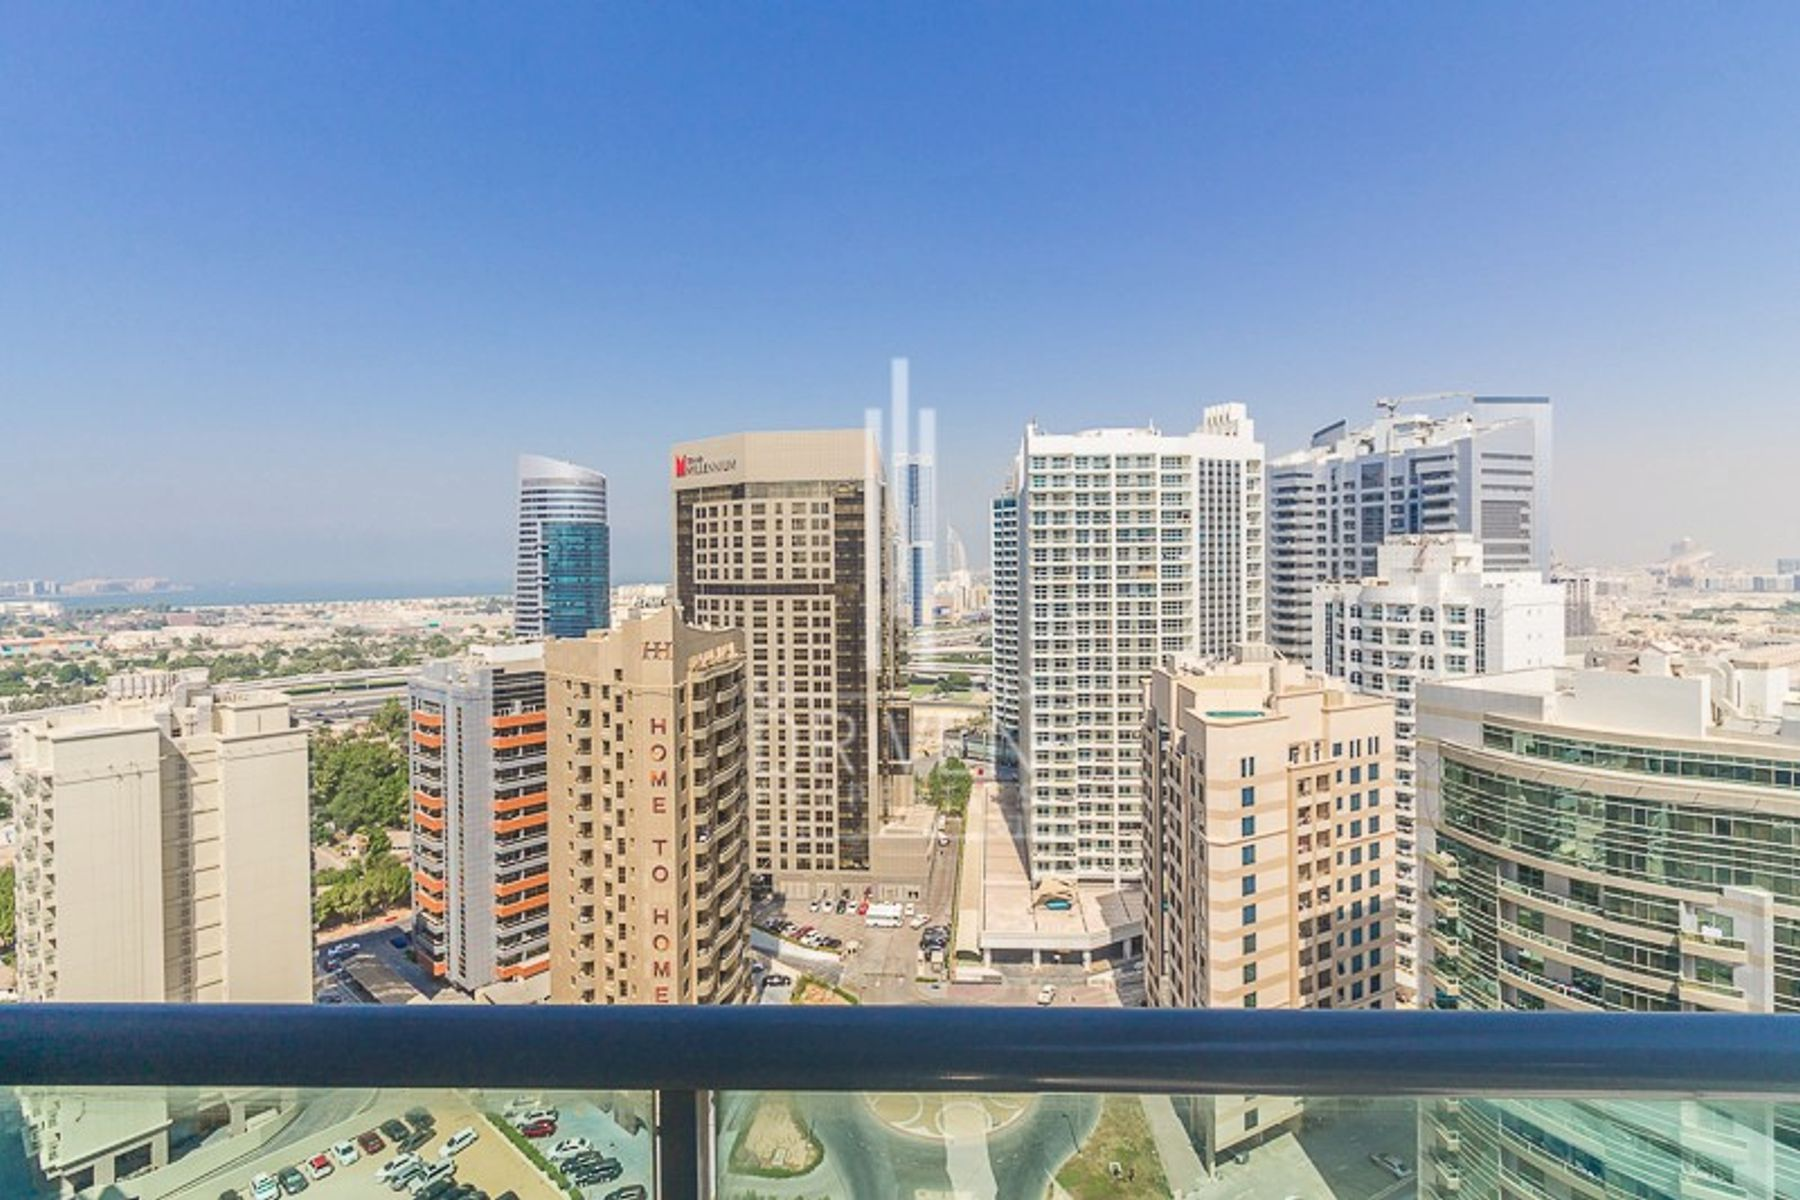 Office for Rent in Tameem House - Barsha Heights (Tecom)